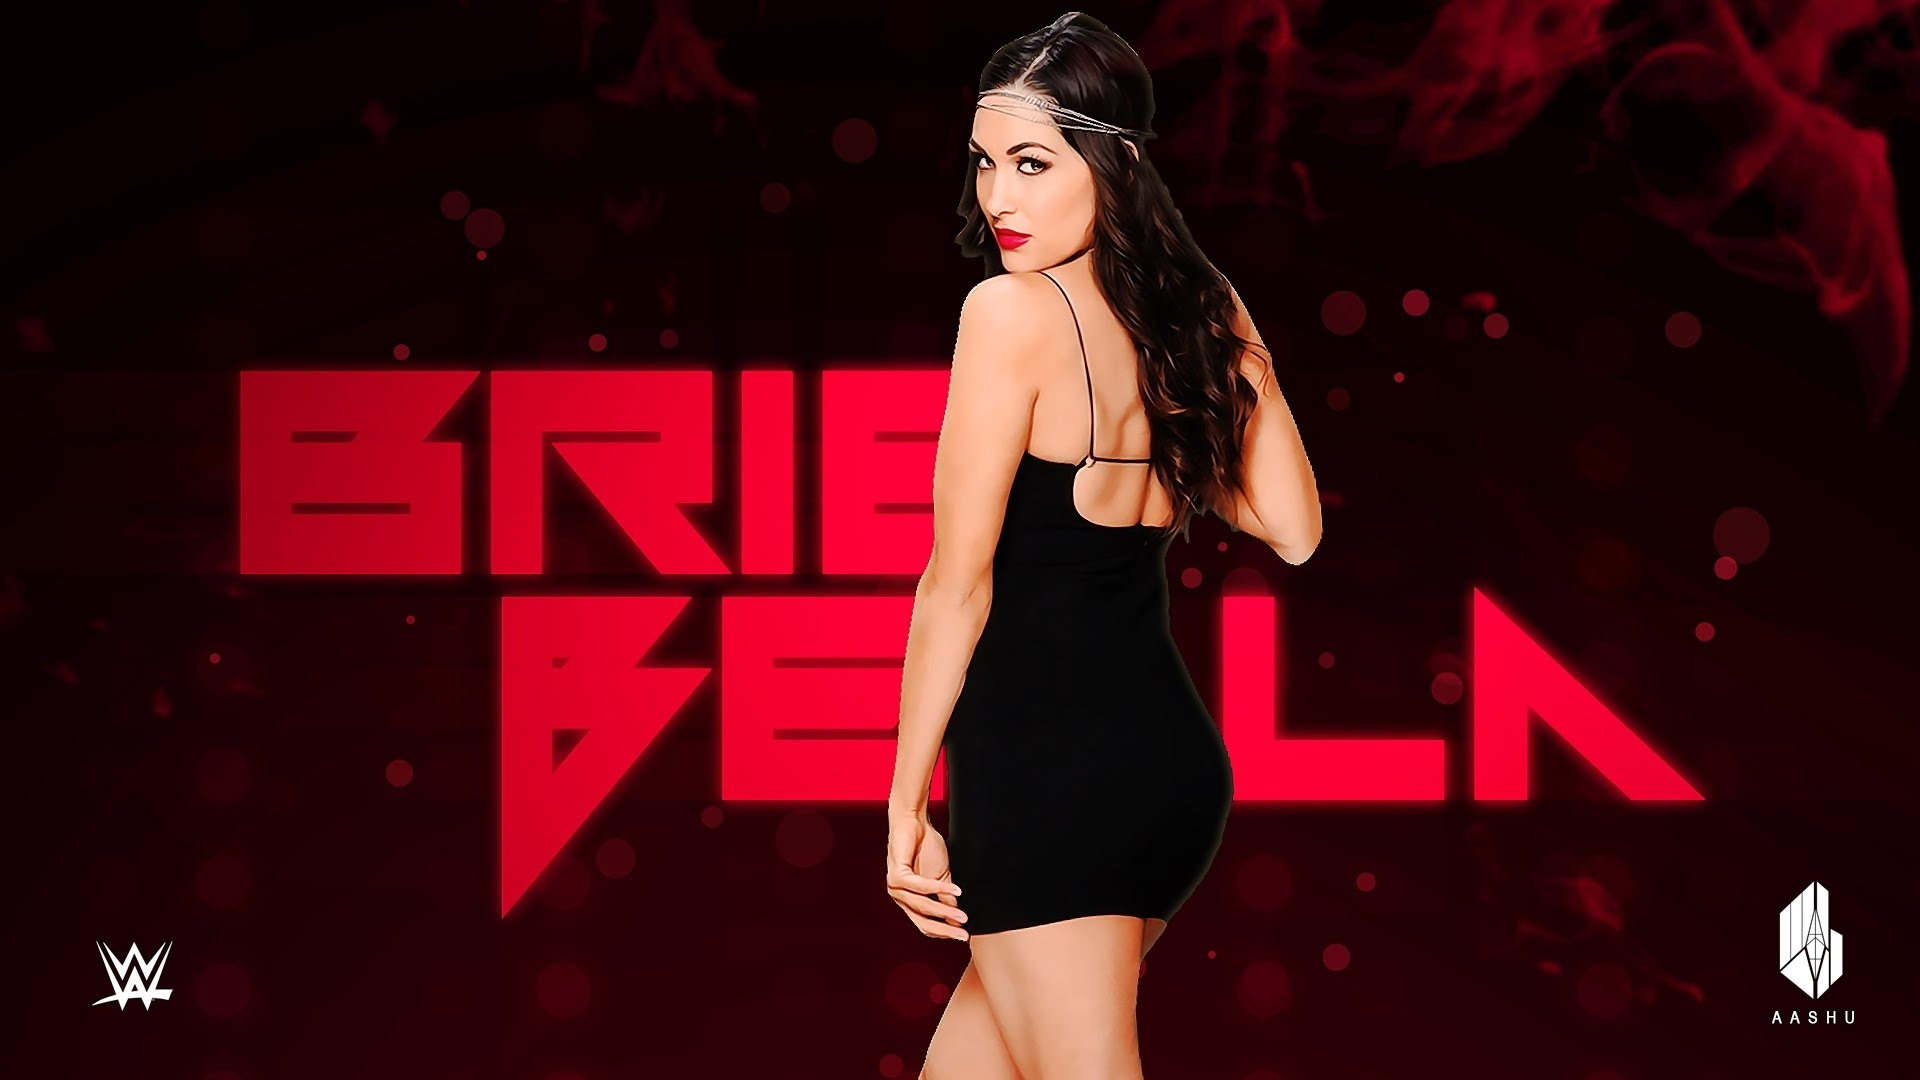 brie bella - custom entrance video (heel) - youtube